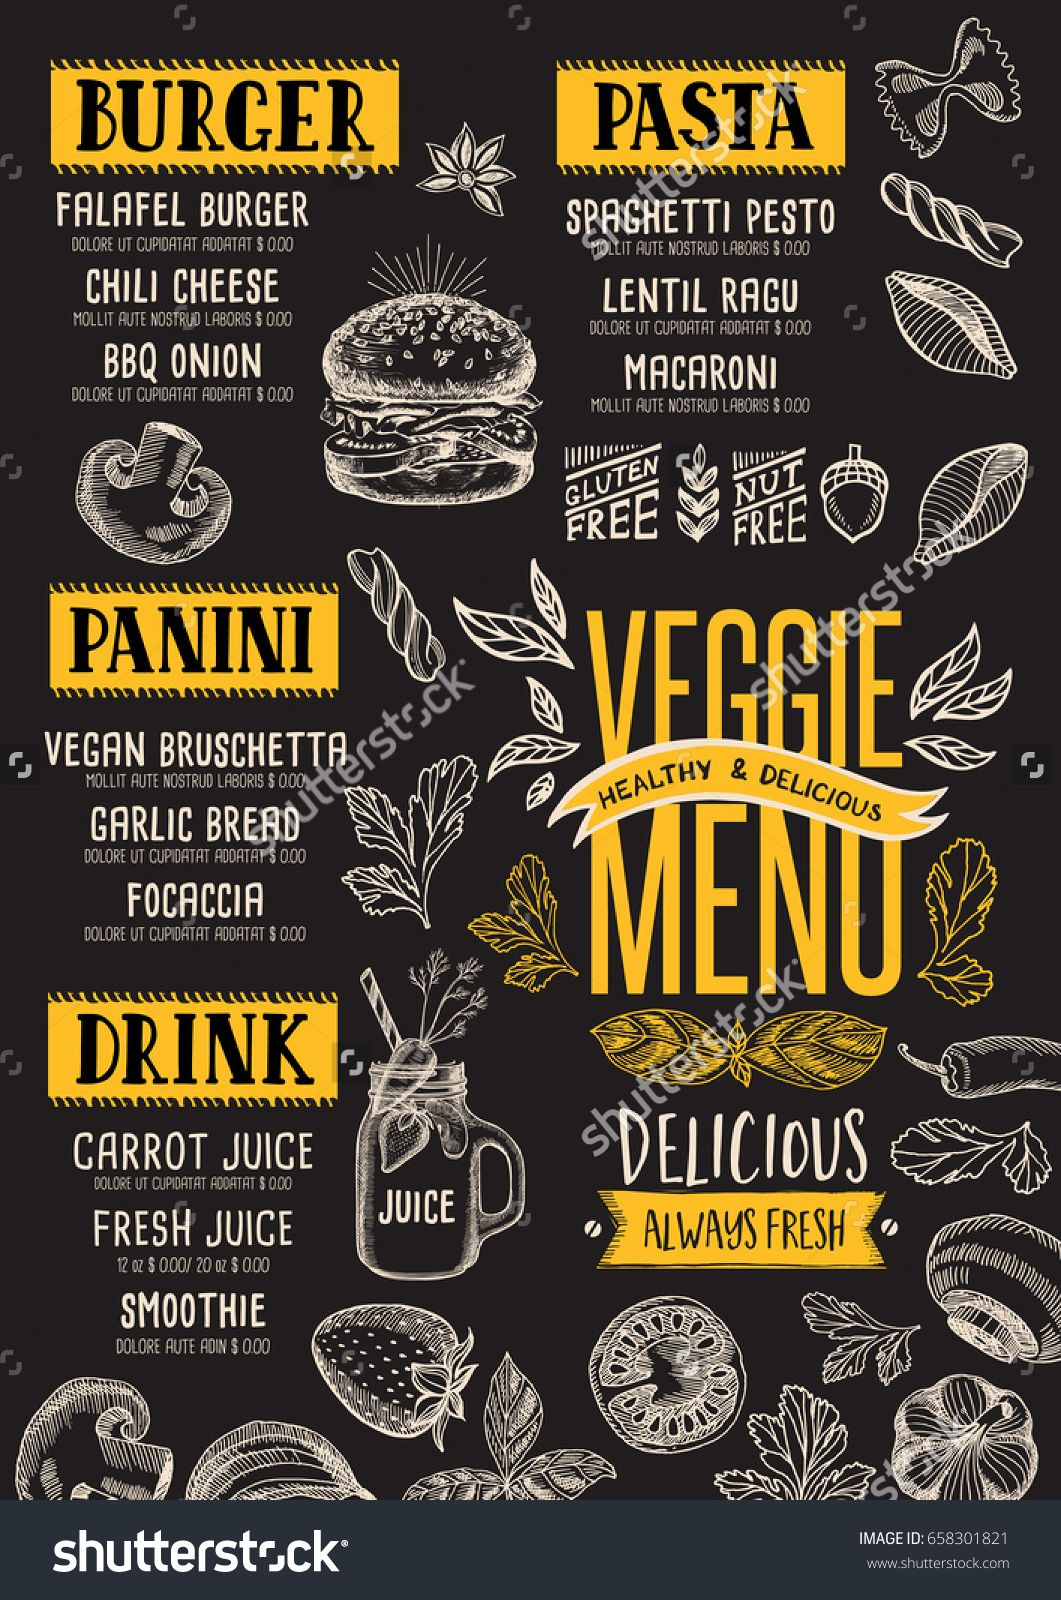 Vegan Food Menu For Restaurant And Cafe Design Template With Hand